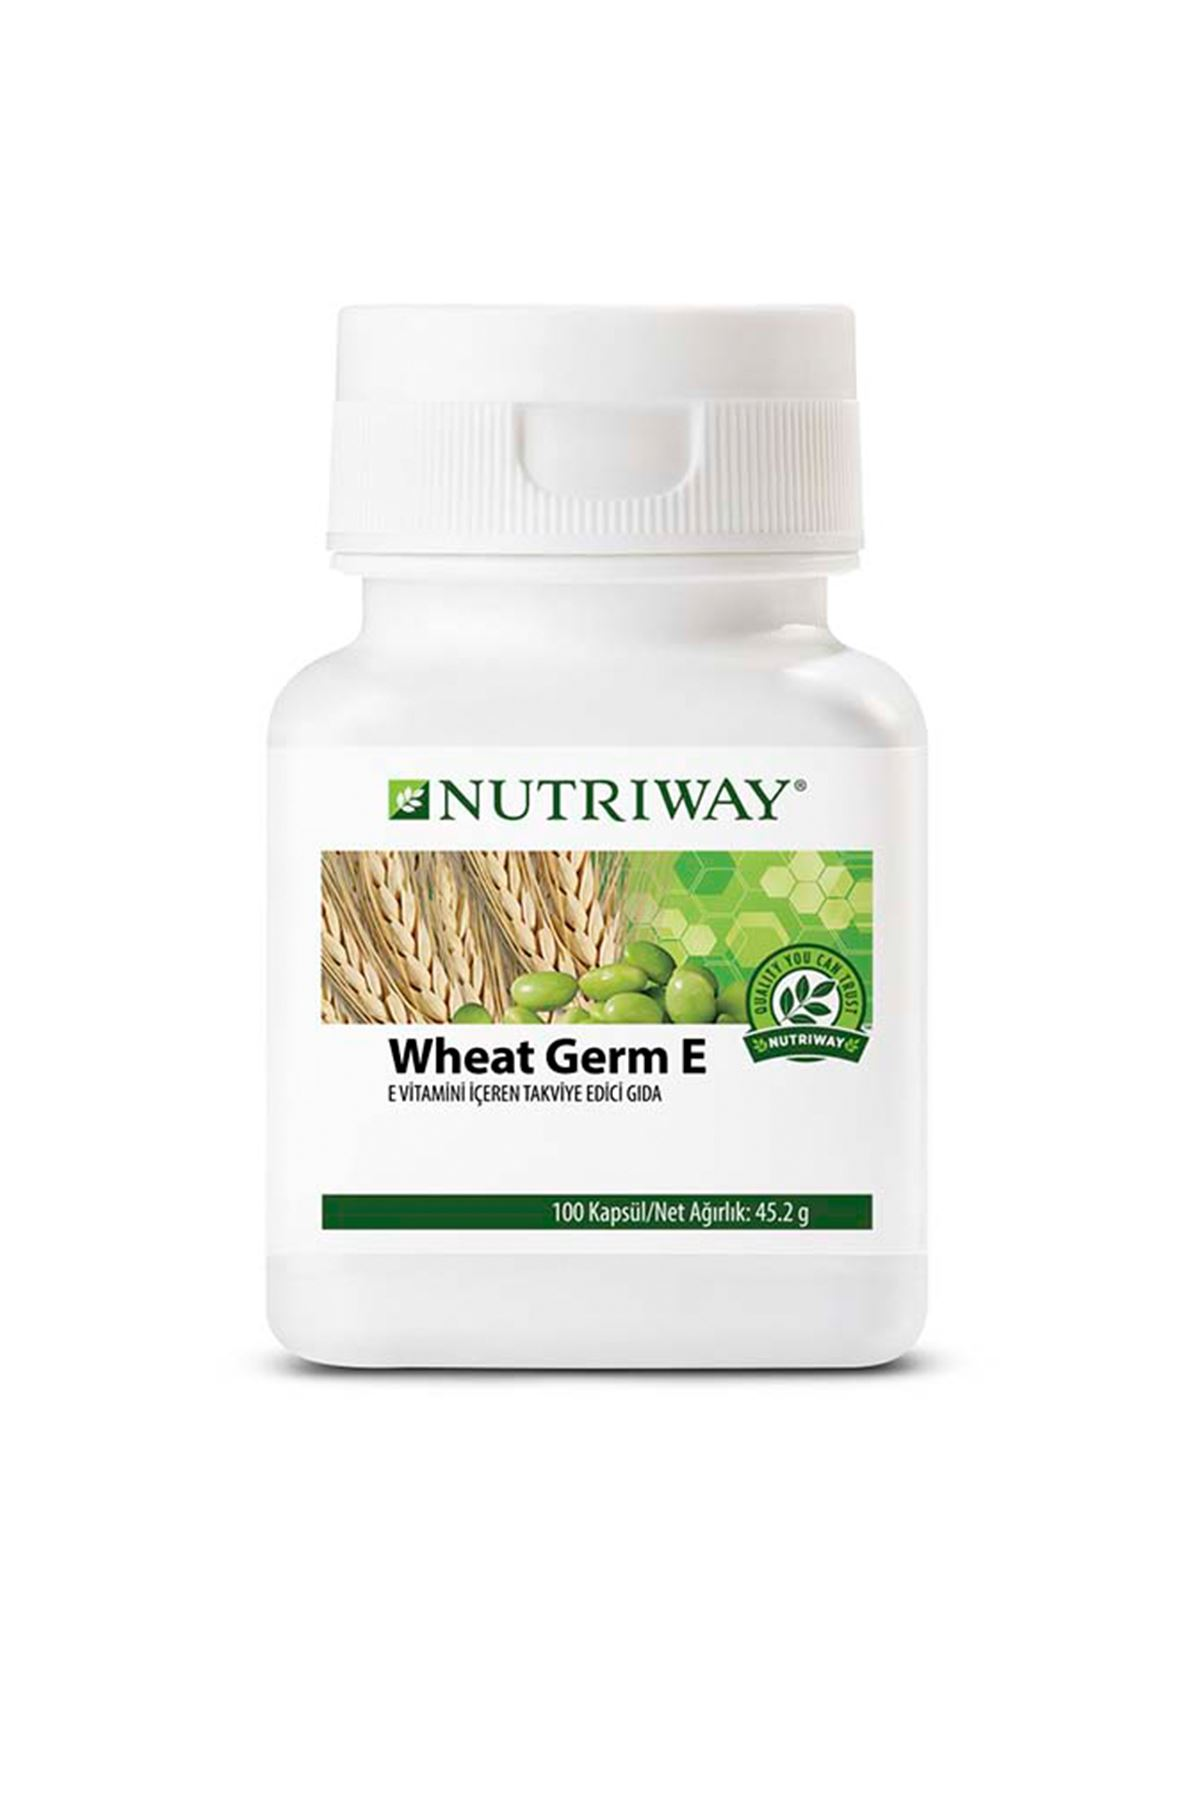 Wheat Germ E NUTRIWAY™